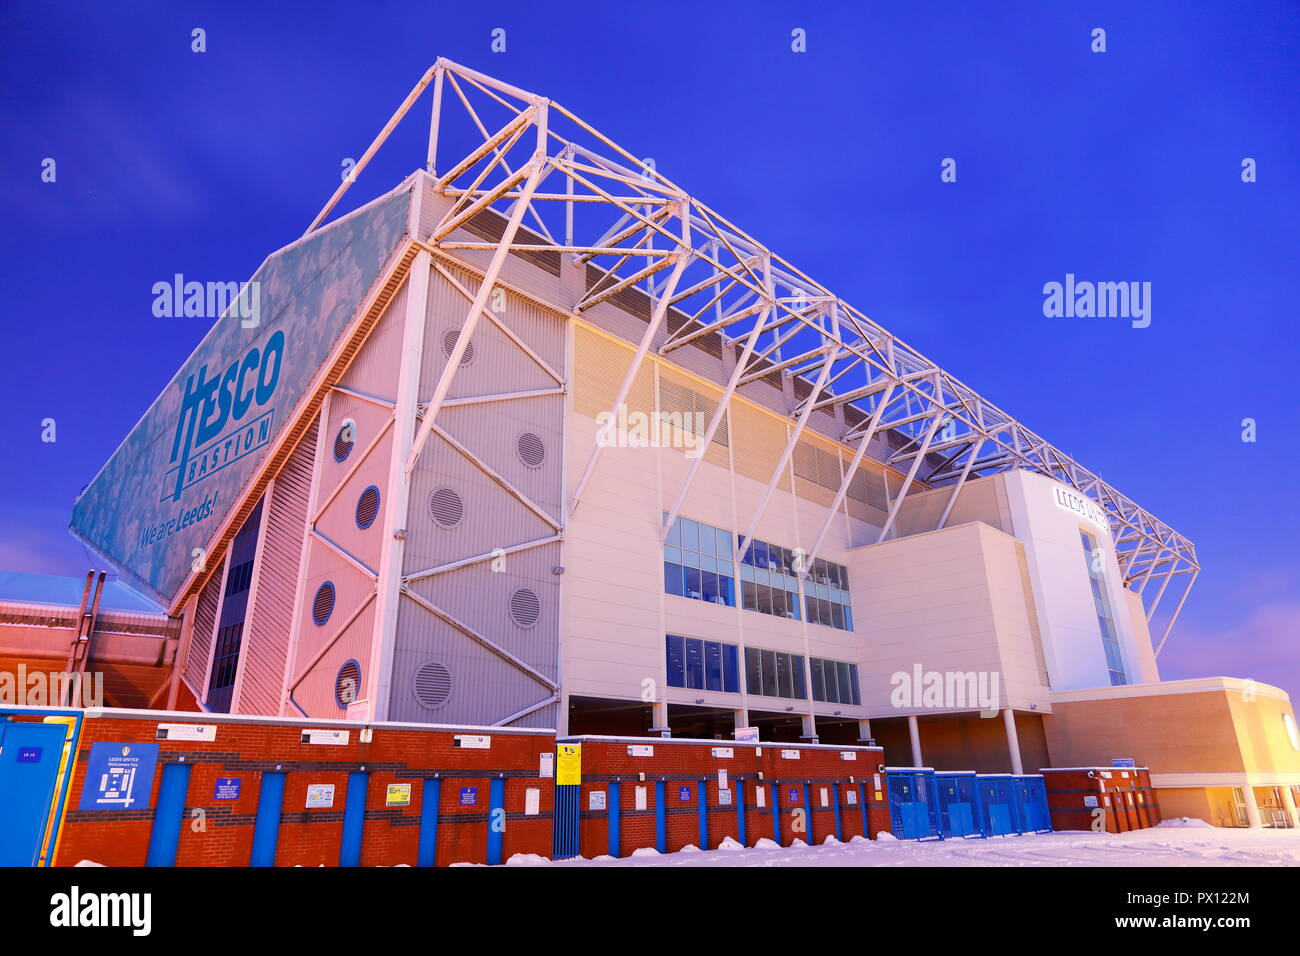 East Stand of Elland Road Football Stadium on a snowy morning. - Stock Image